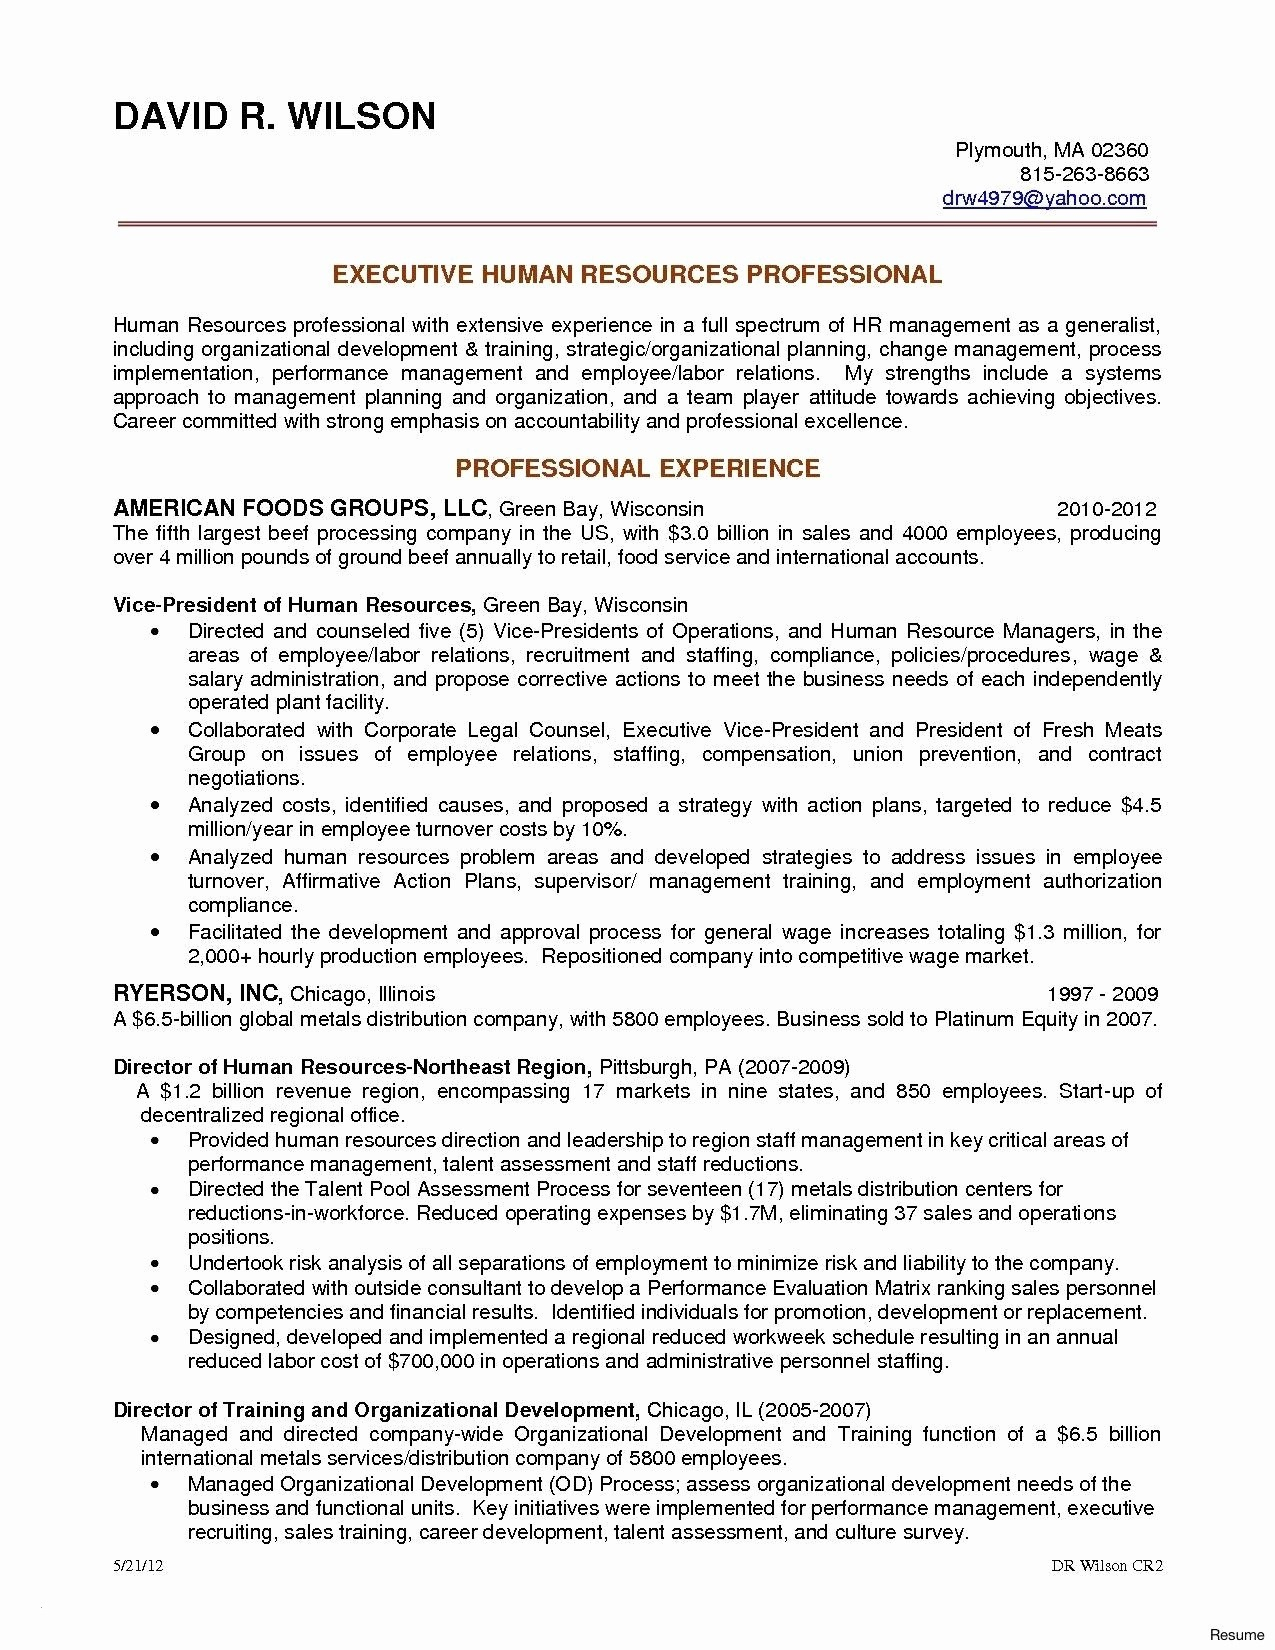 Store Manager Resume Template - Retail Store Manager Resume Example Unique Retail Management Resume